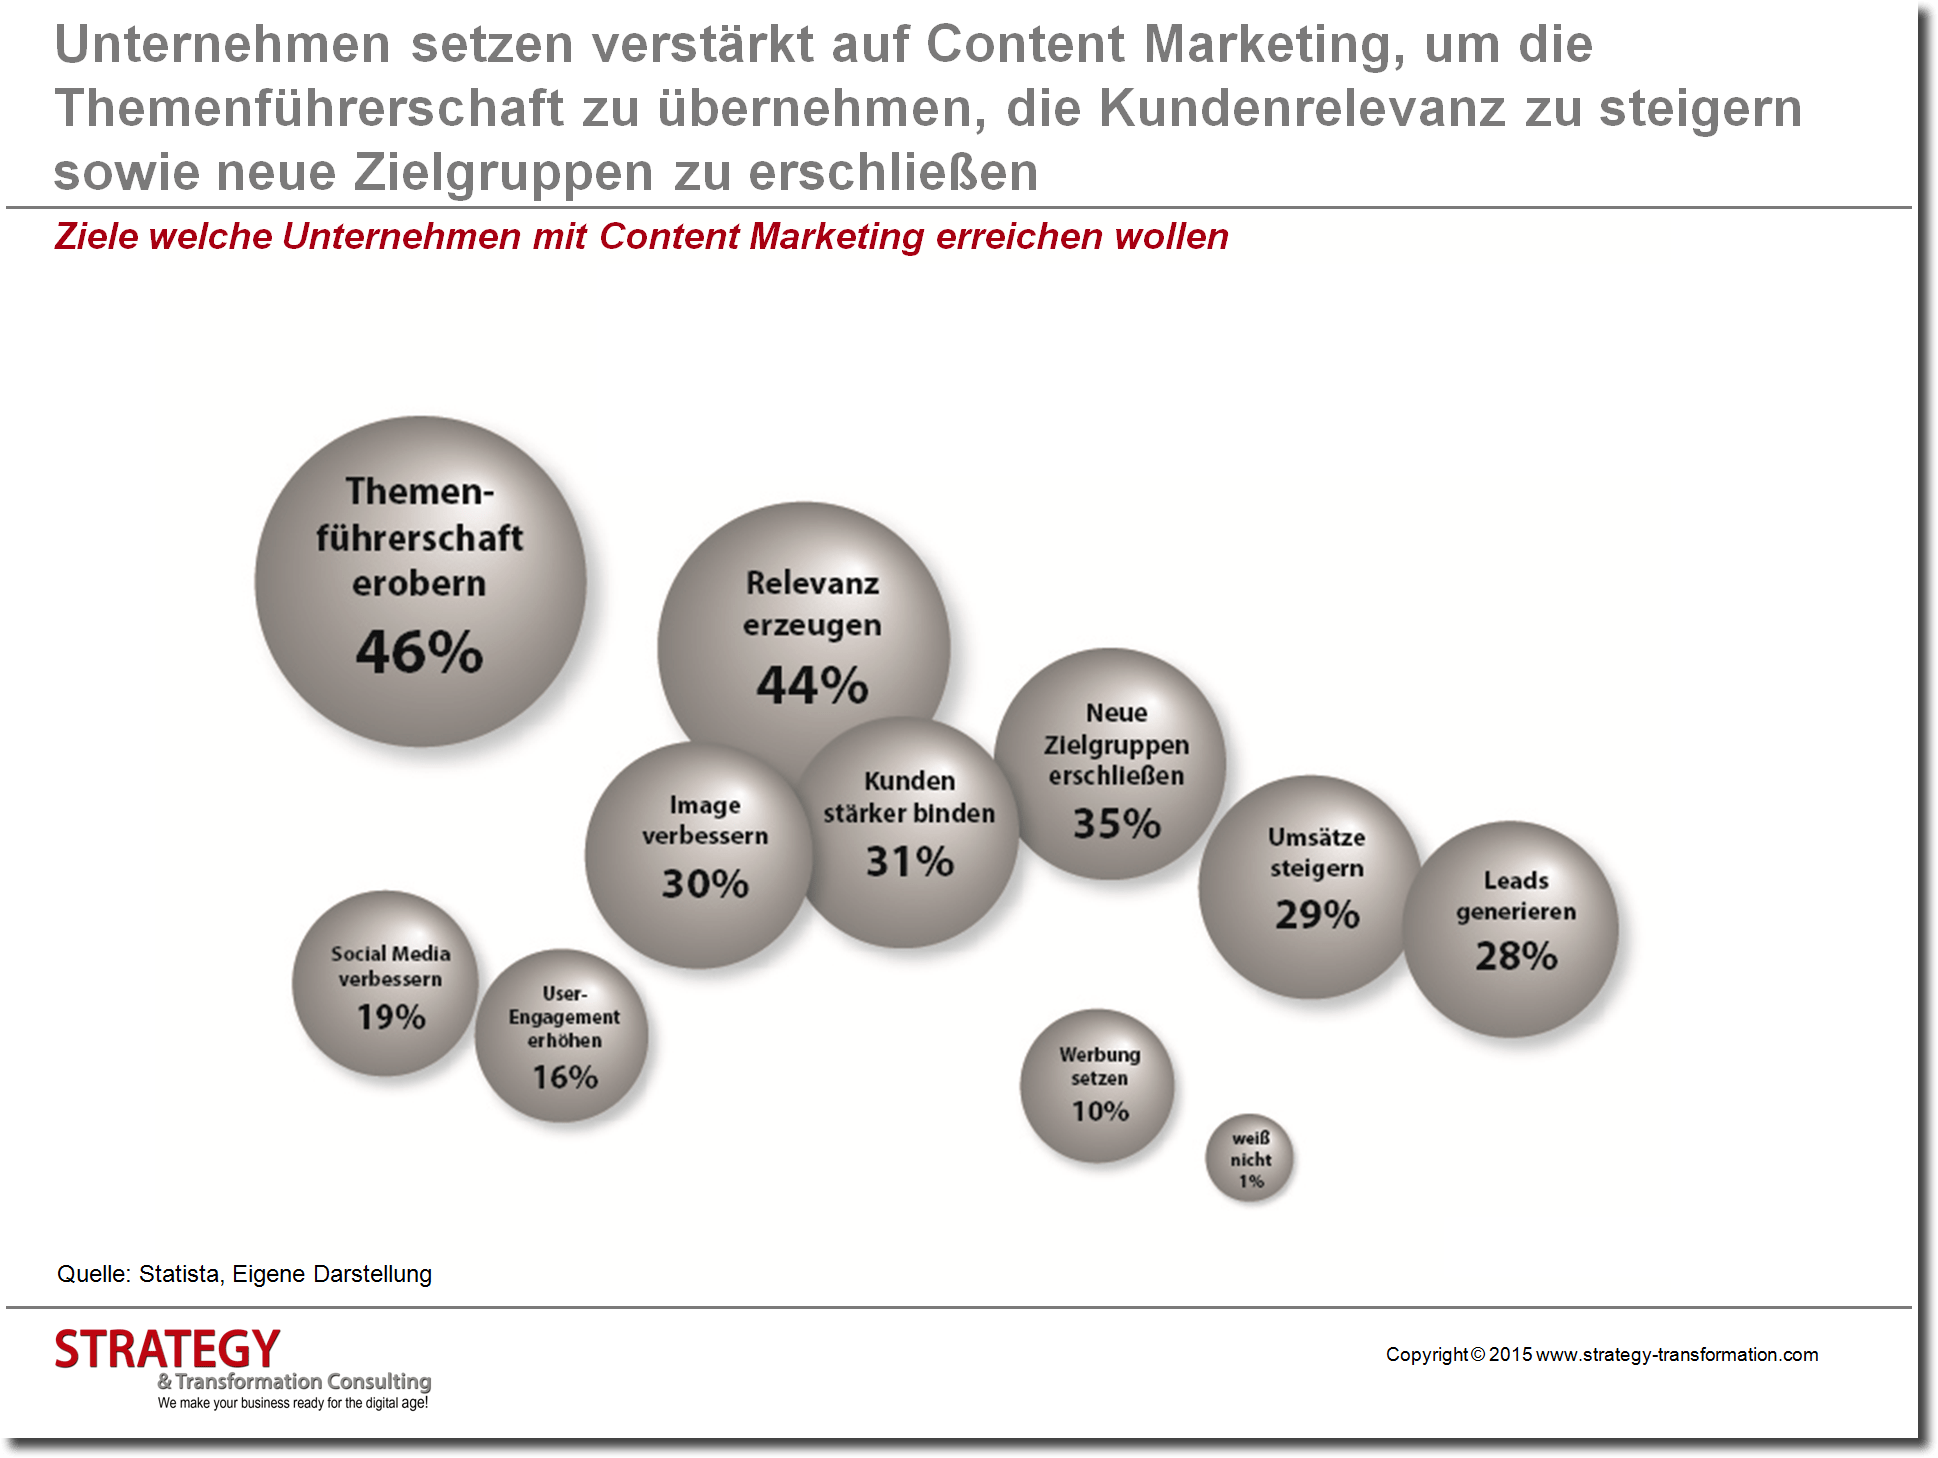 Content Marketing Ziele